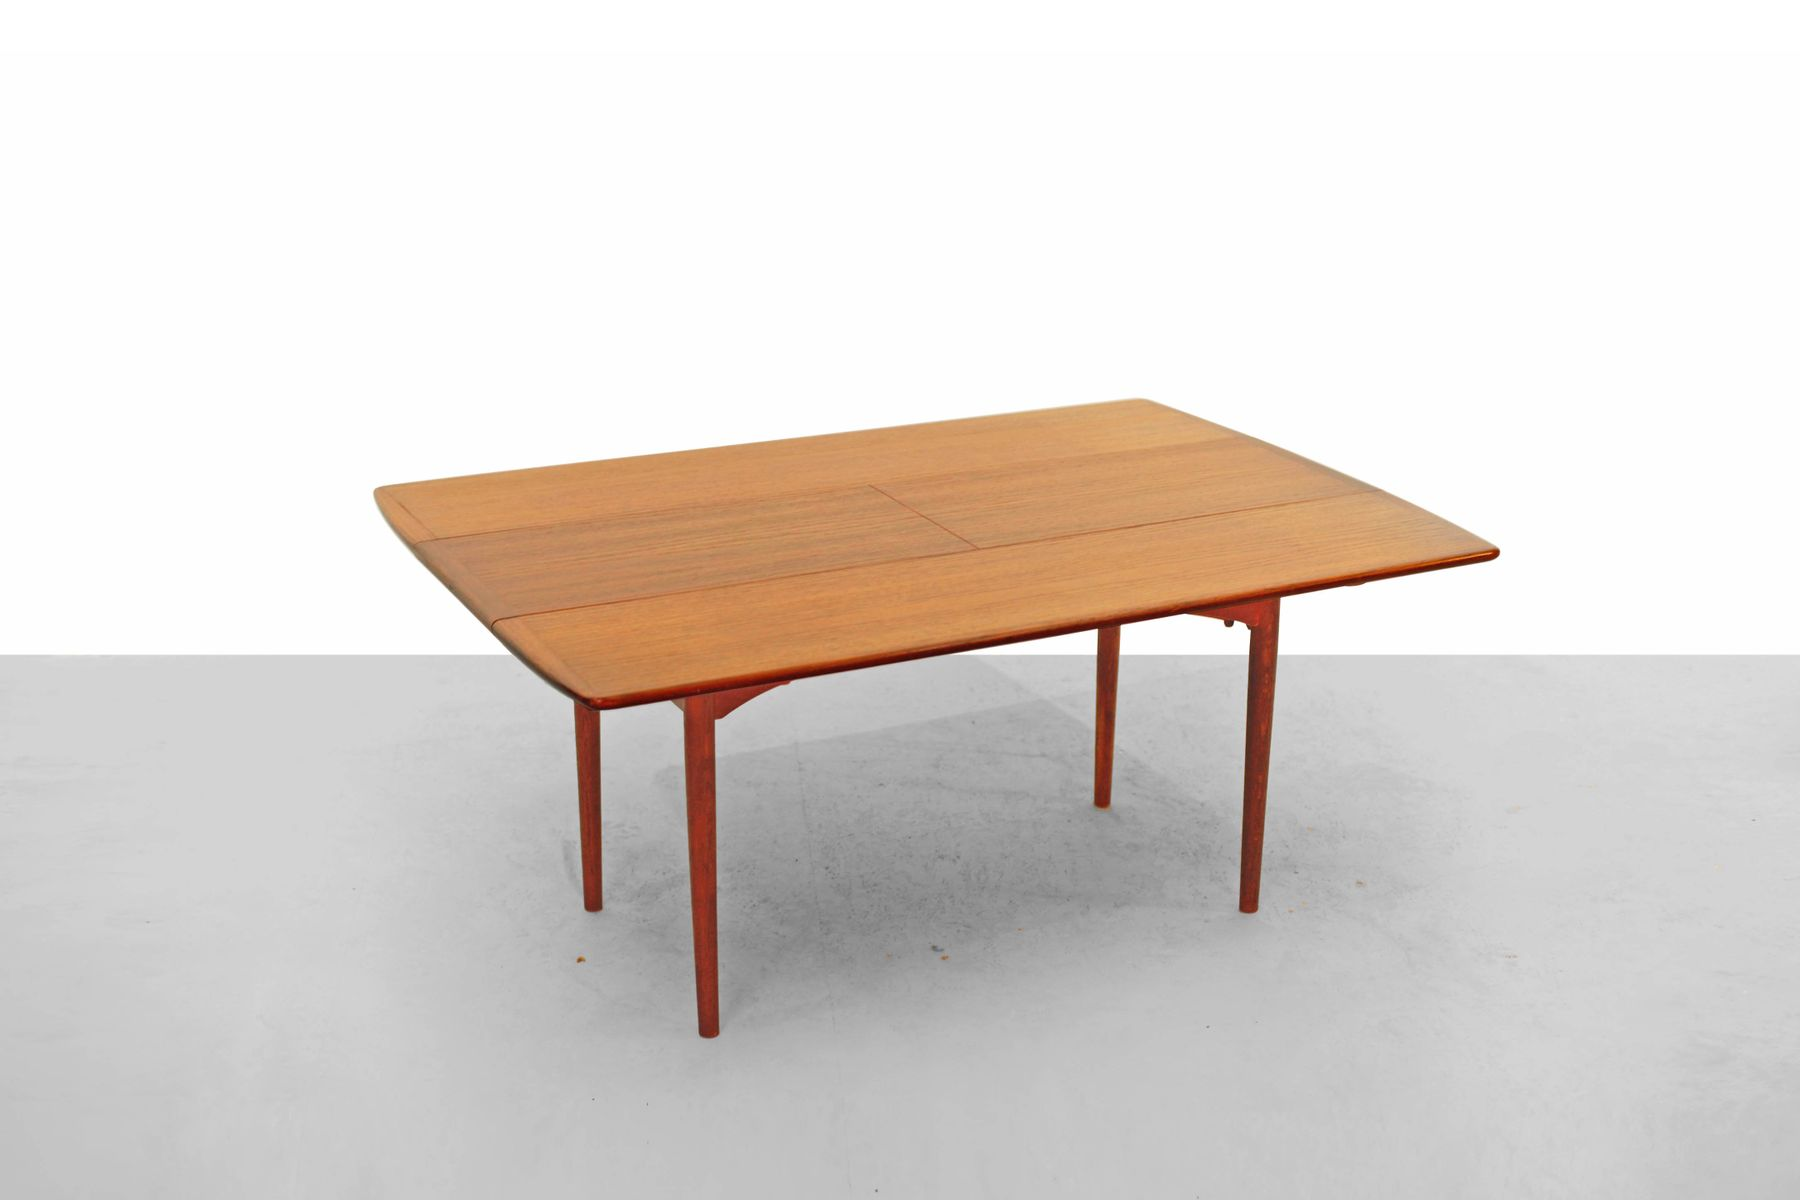 Teak Coffee Or Dining Table From Haisch 1960s For Sale At Pamono